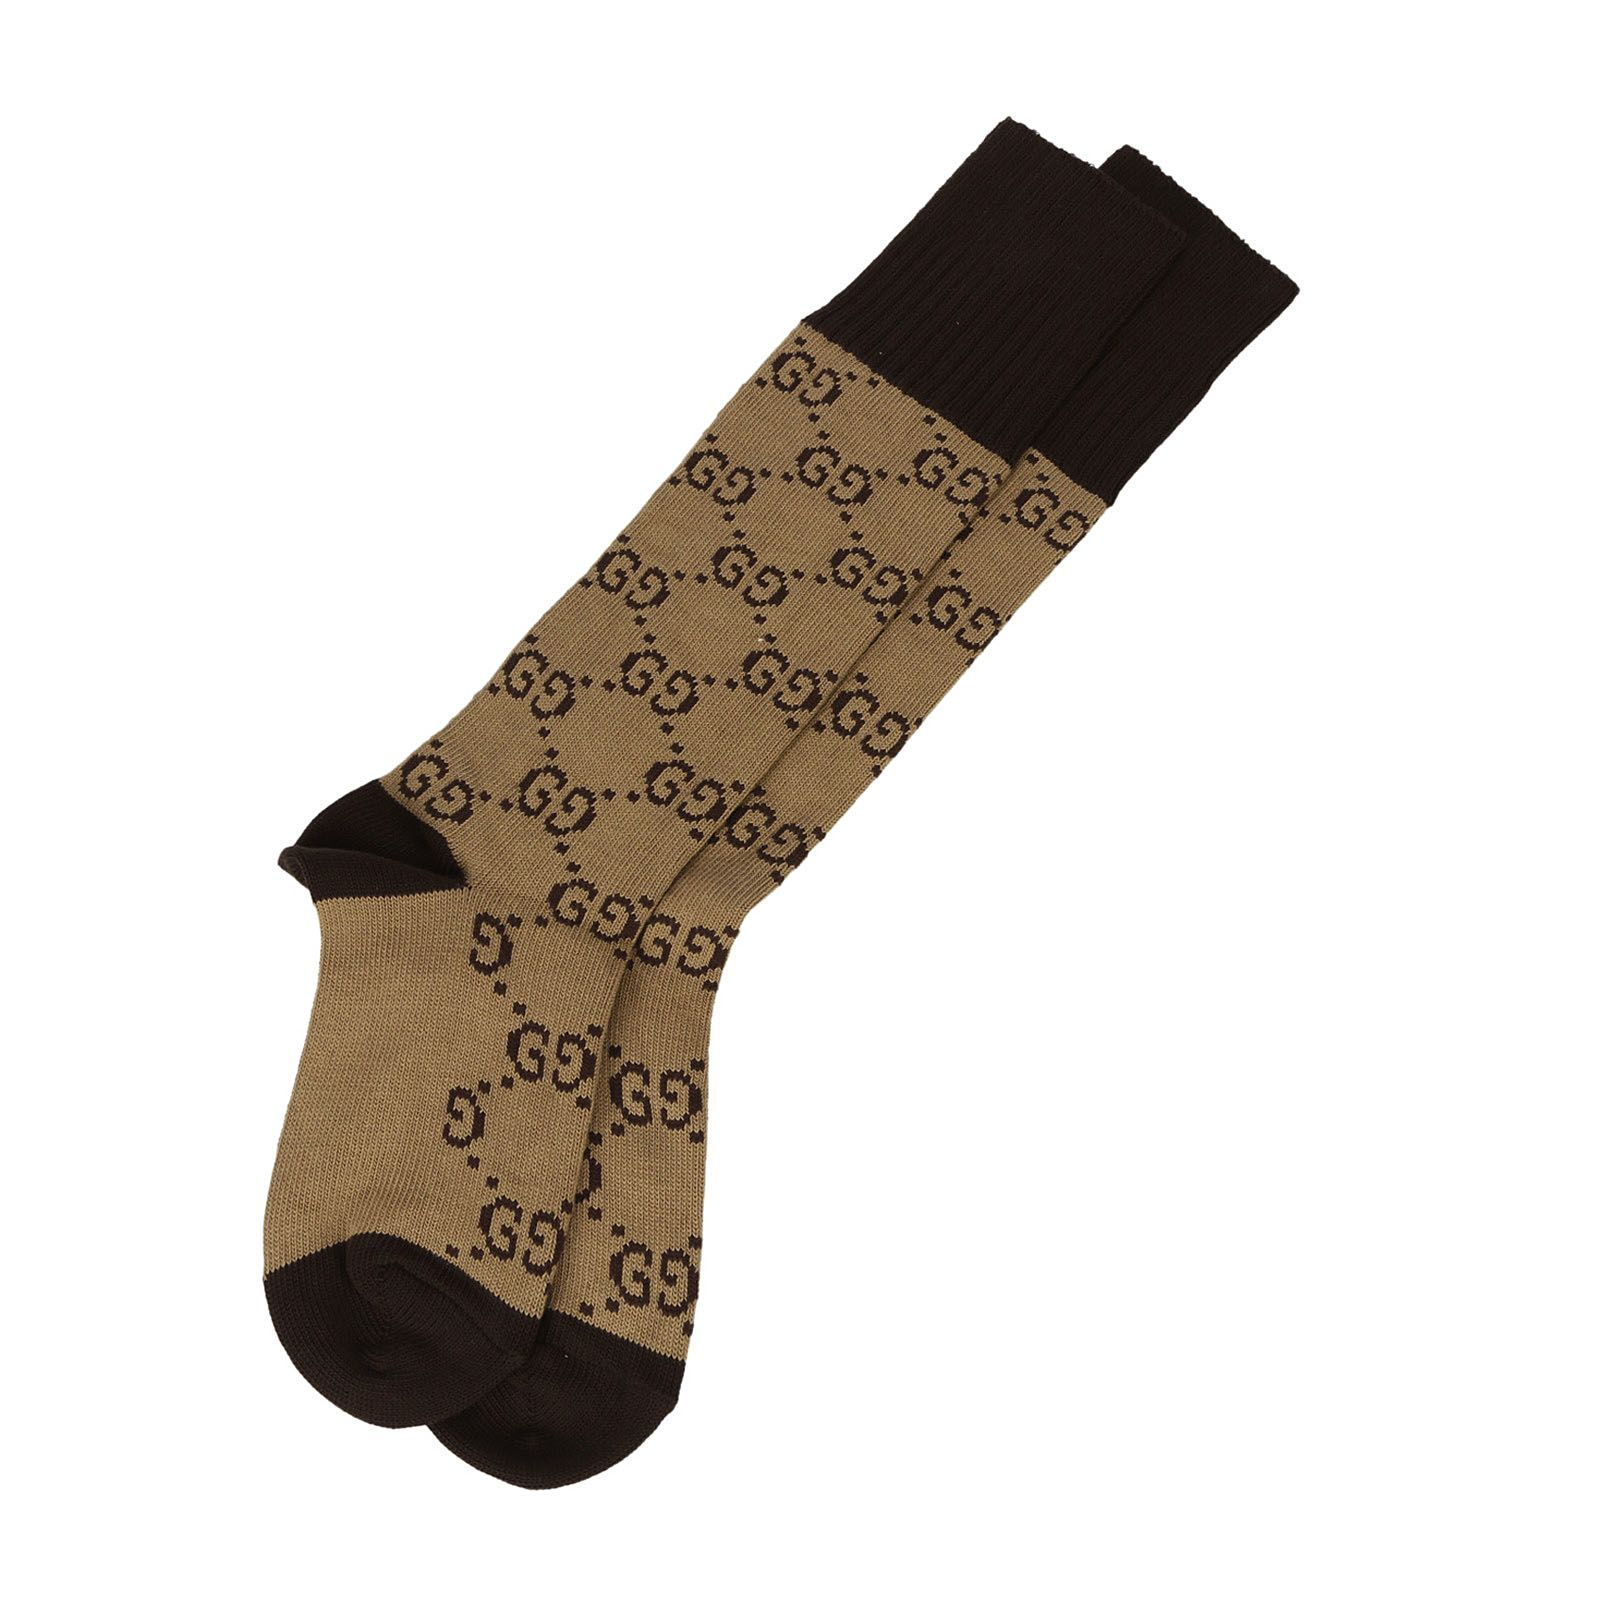 Shell Gucci Beige And Brown Gg Supreme Socks - Editorialist